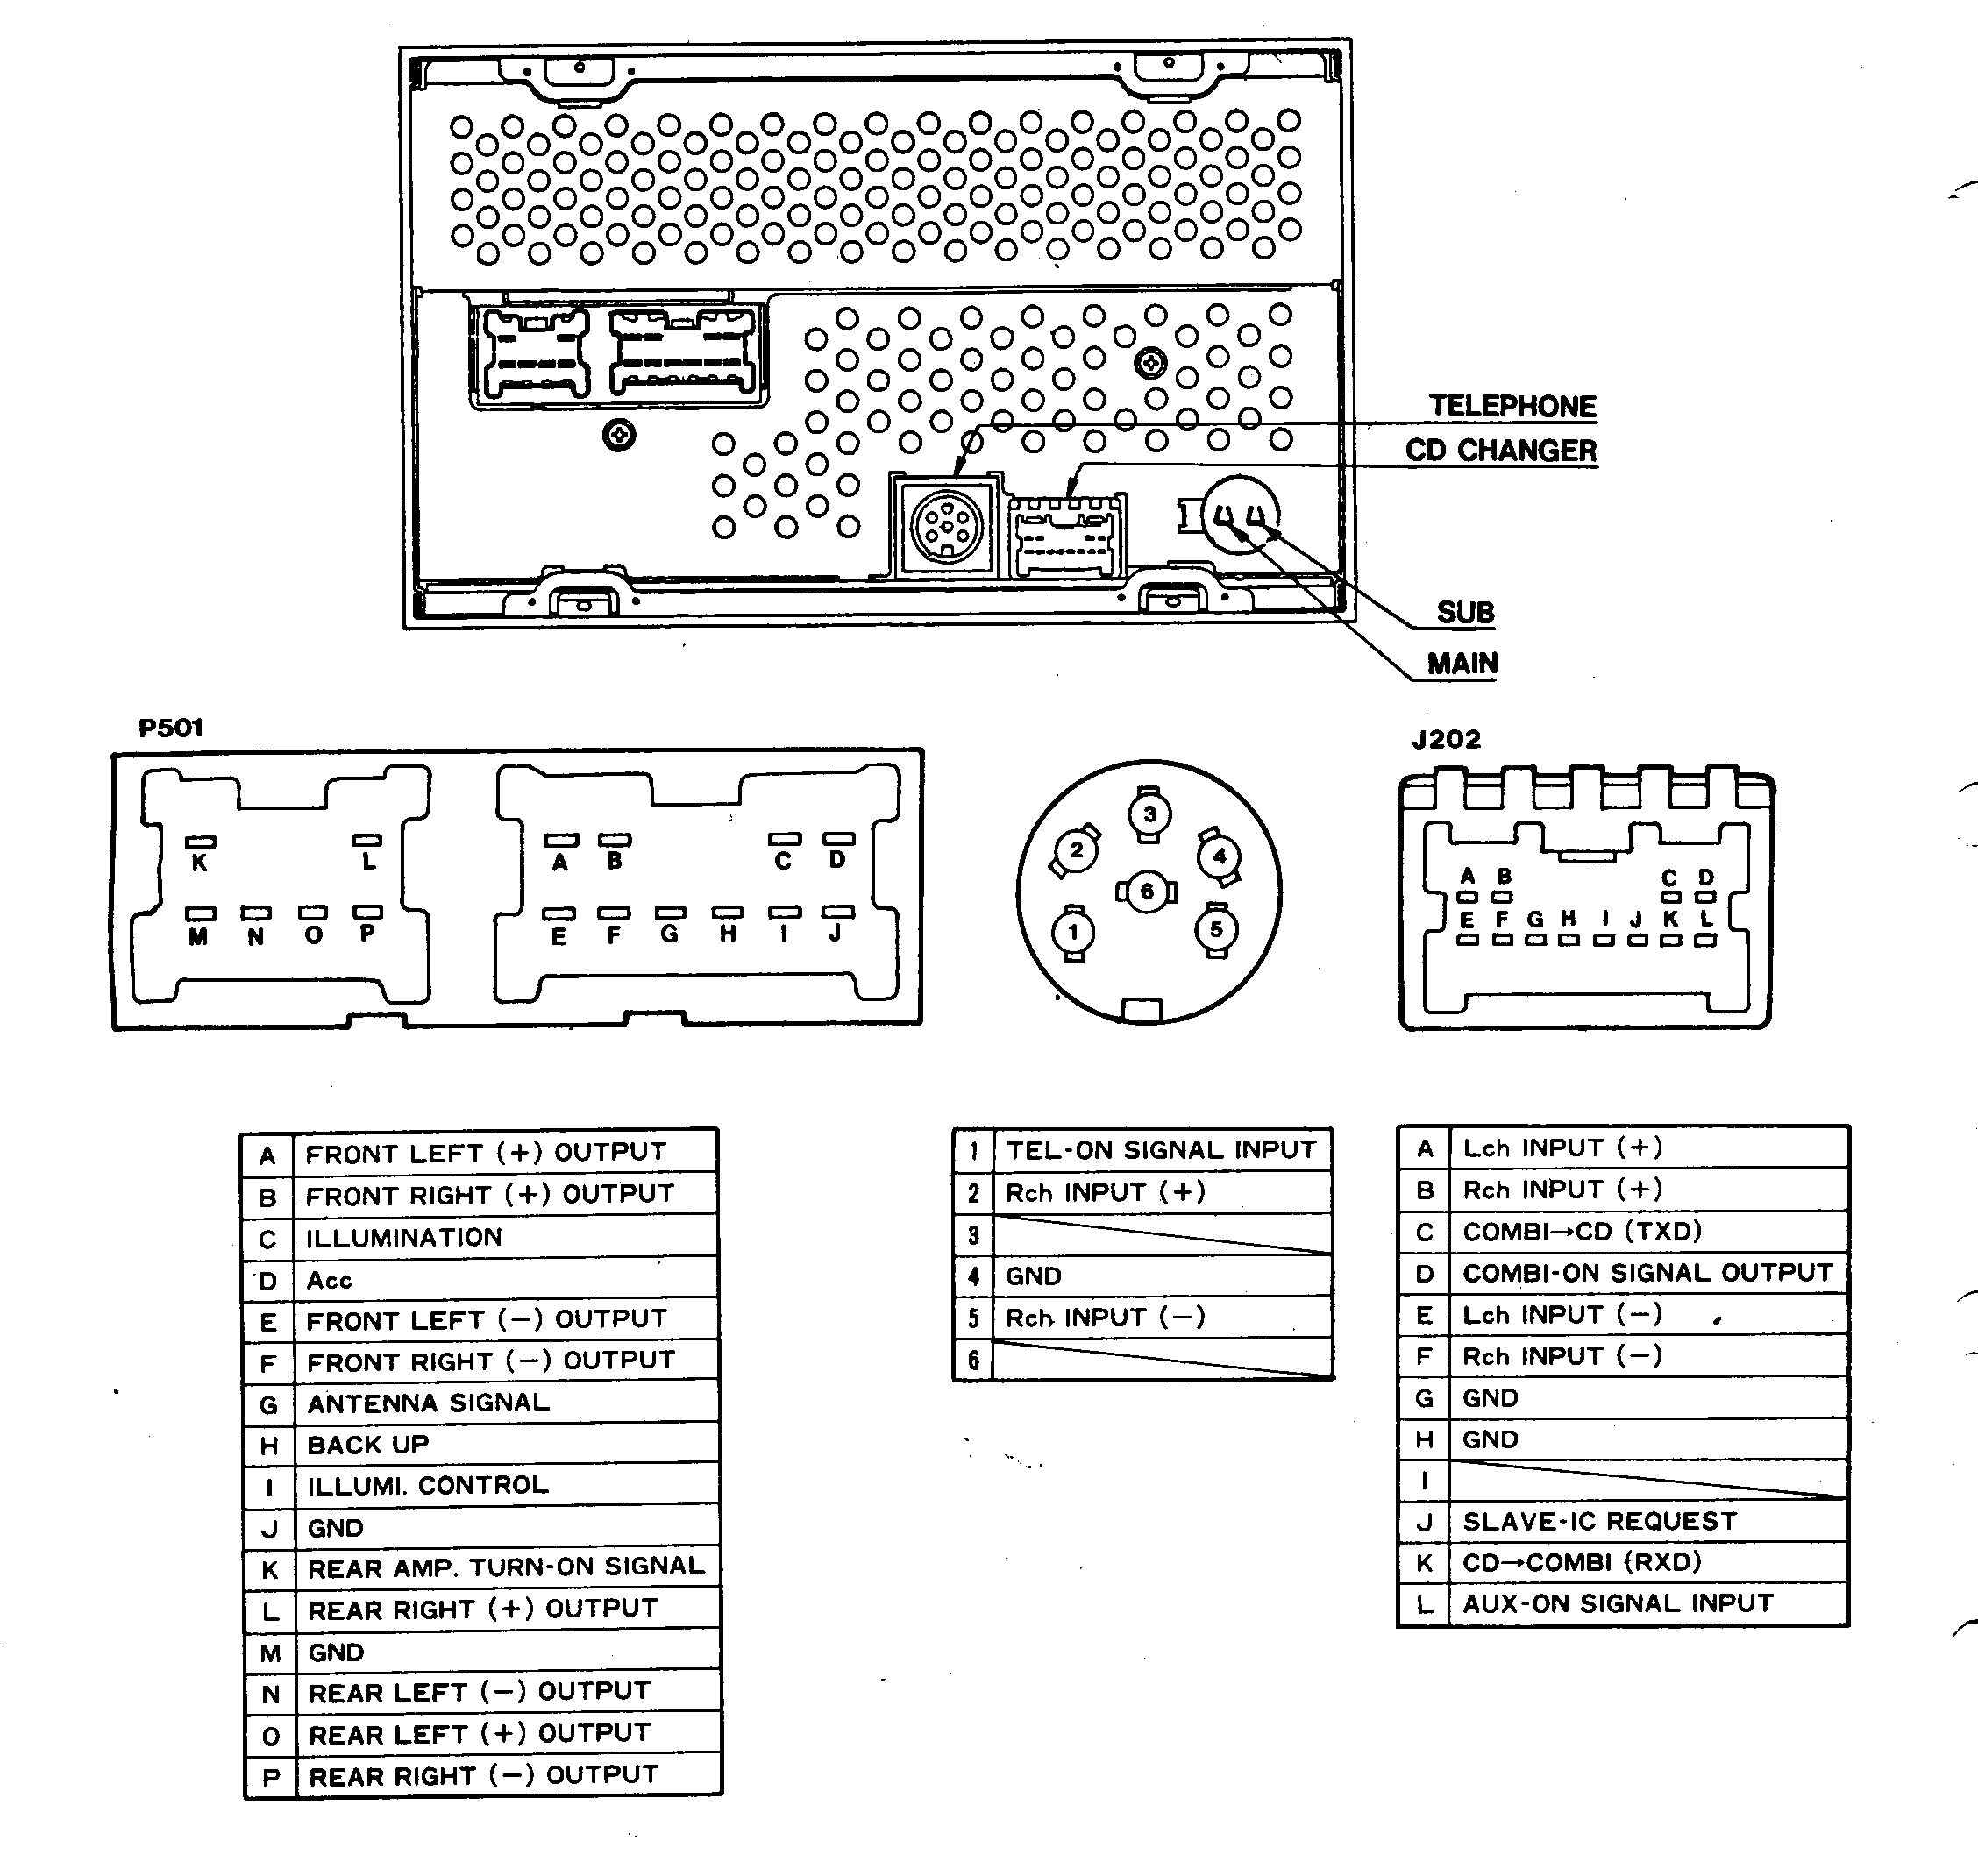 1998 radio wiring diagram